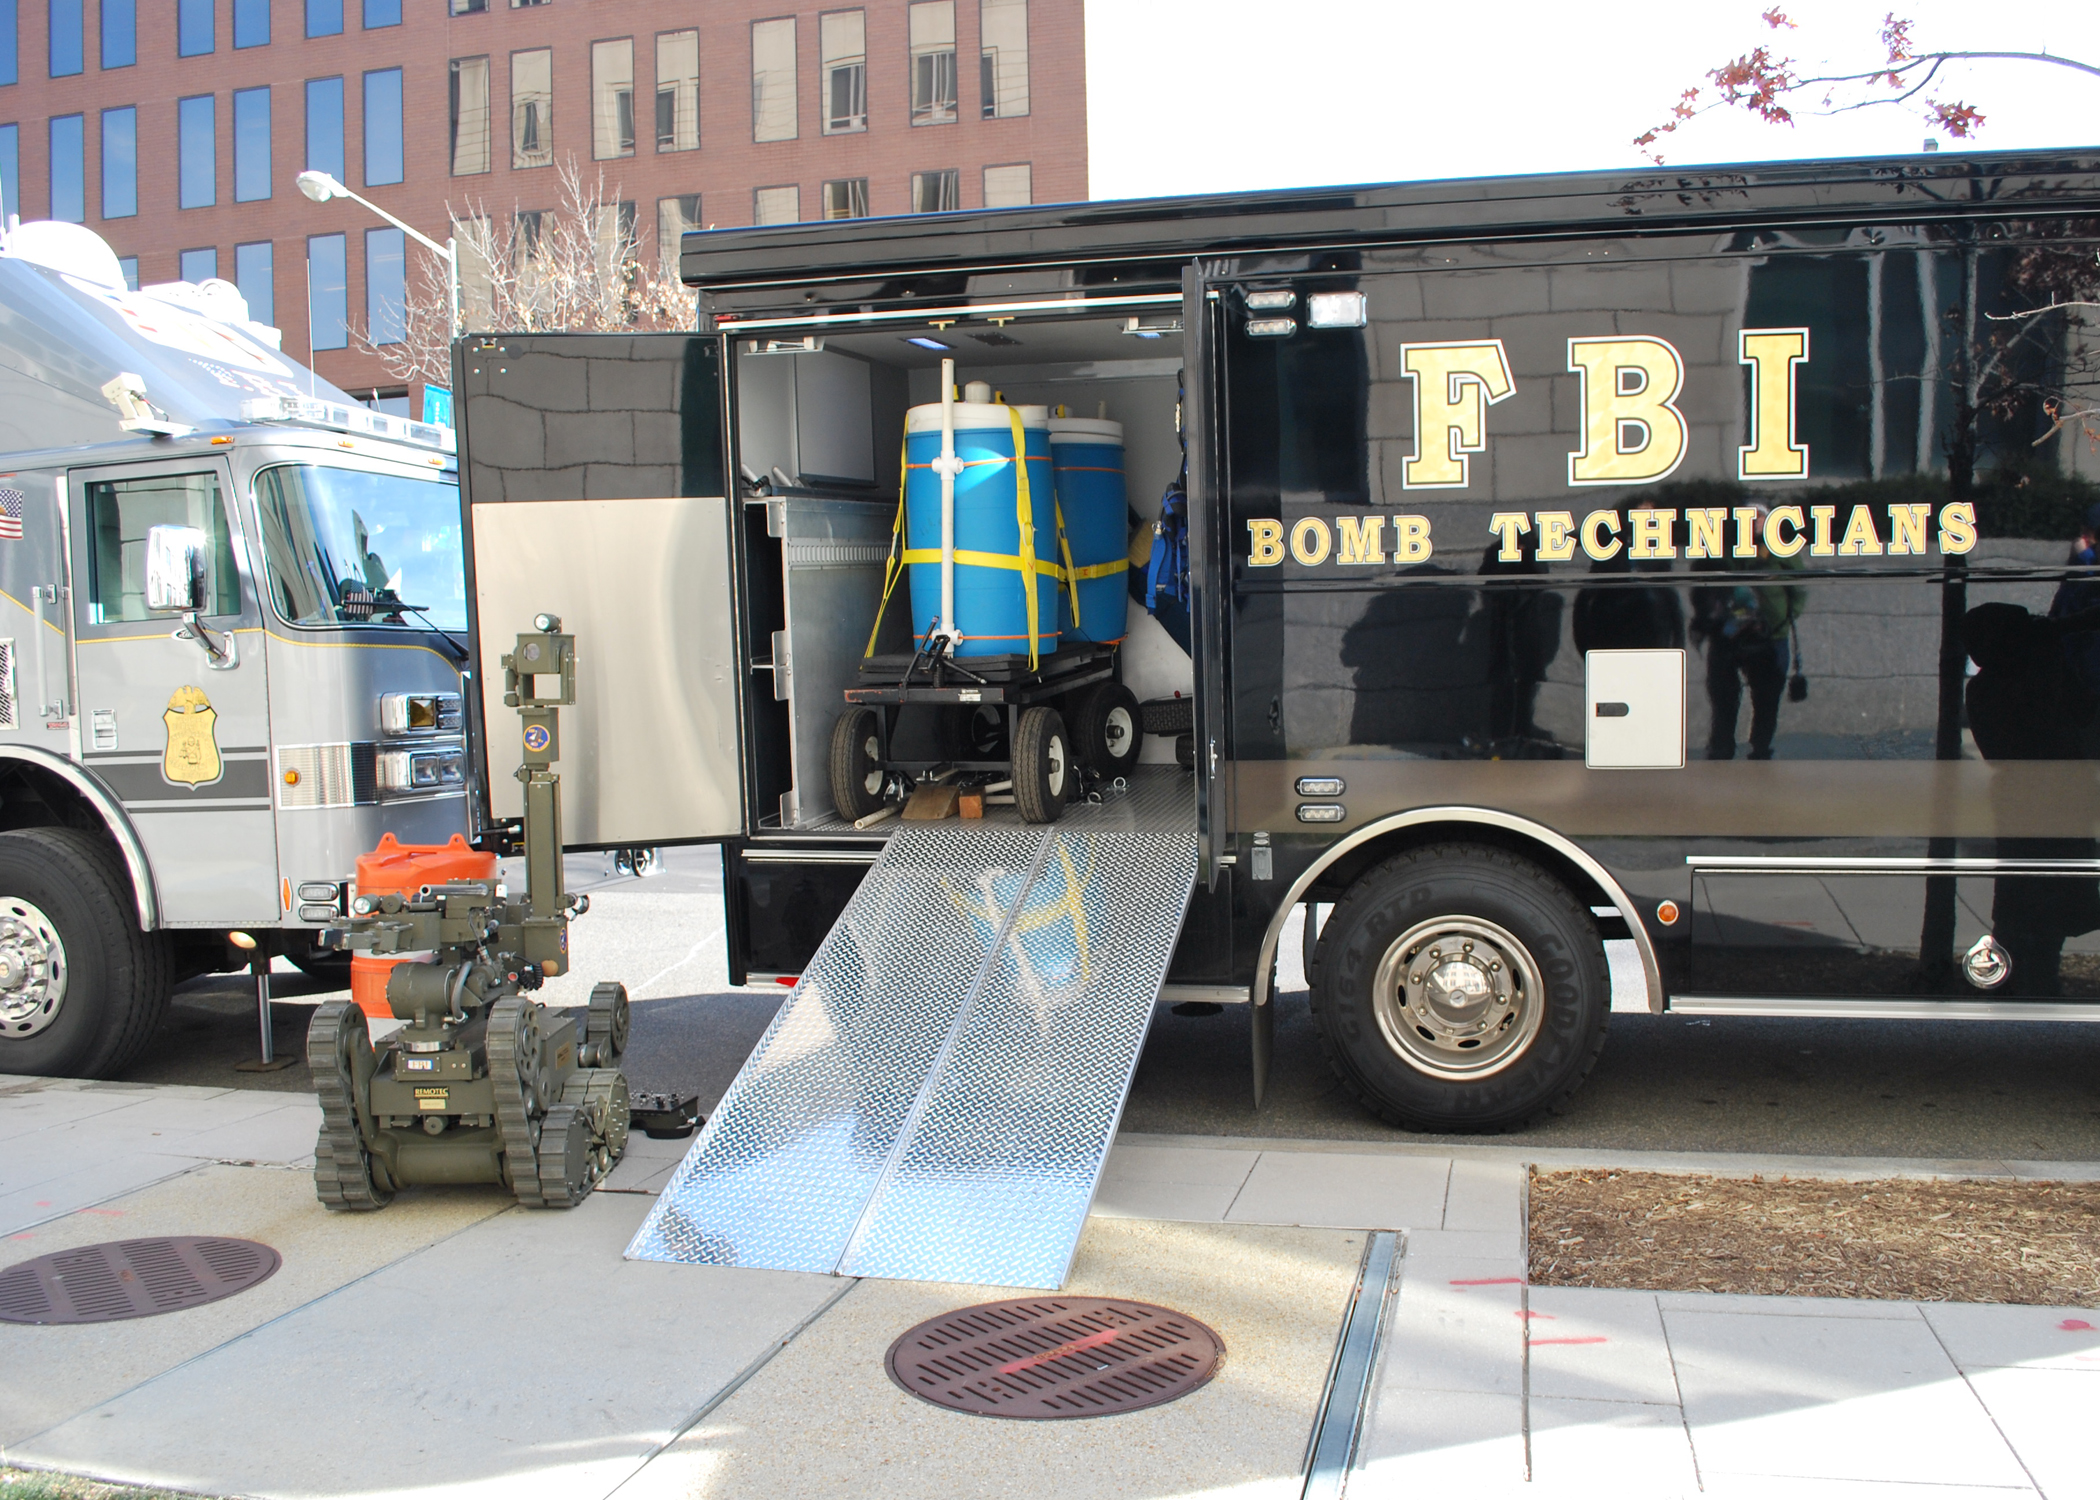 FBI Gear from the bomb techs vehicle